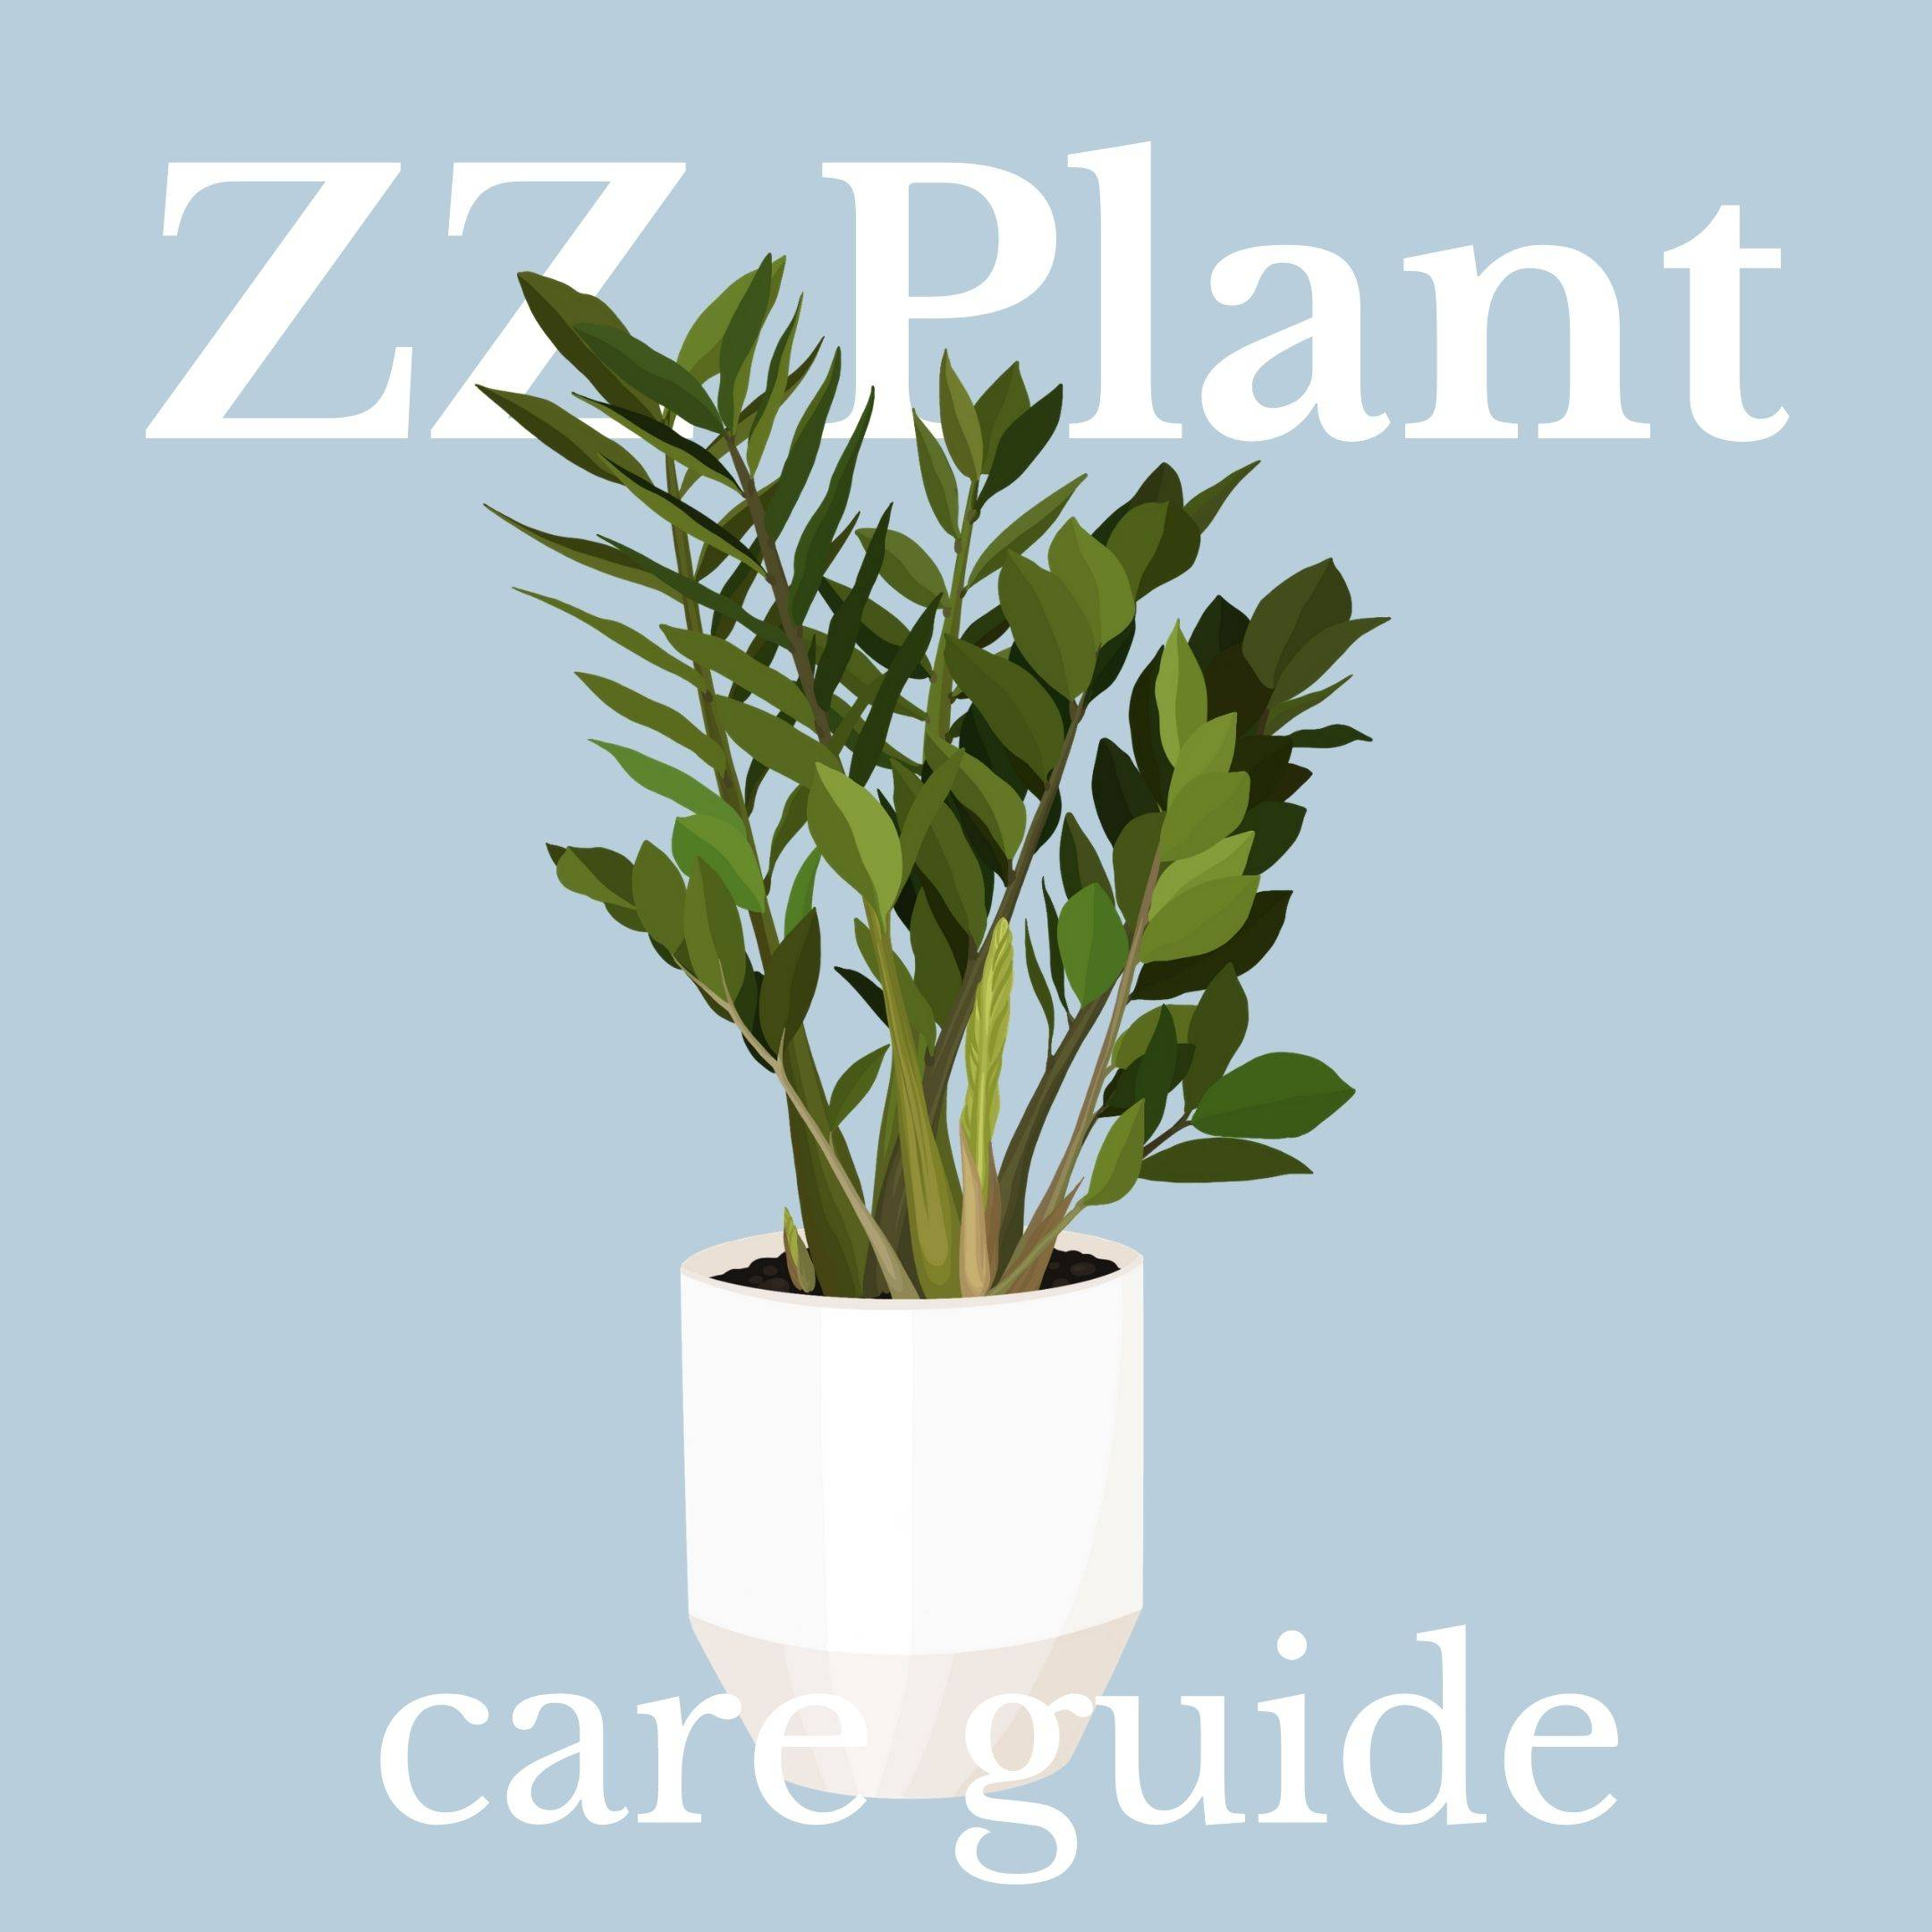 Drawing of zz plant